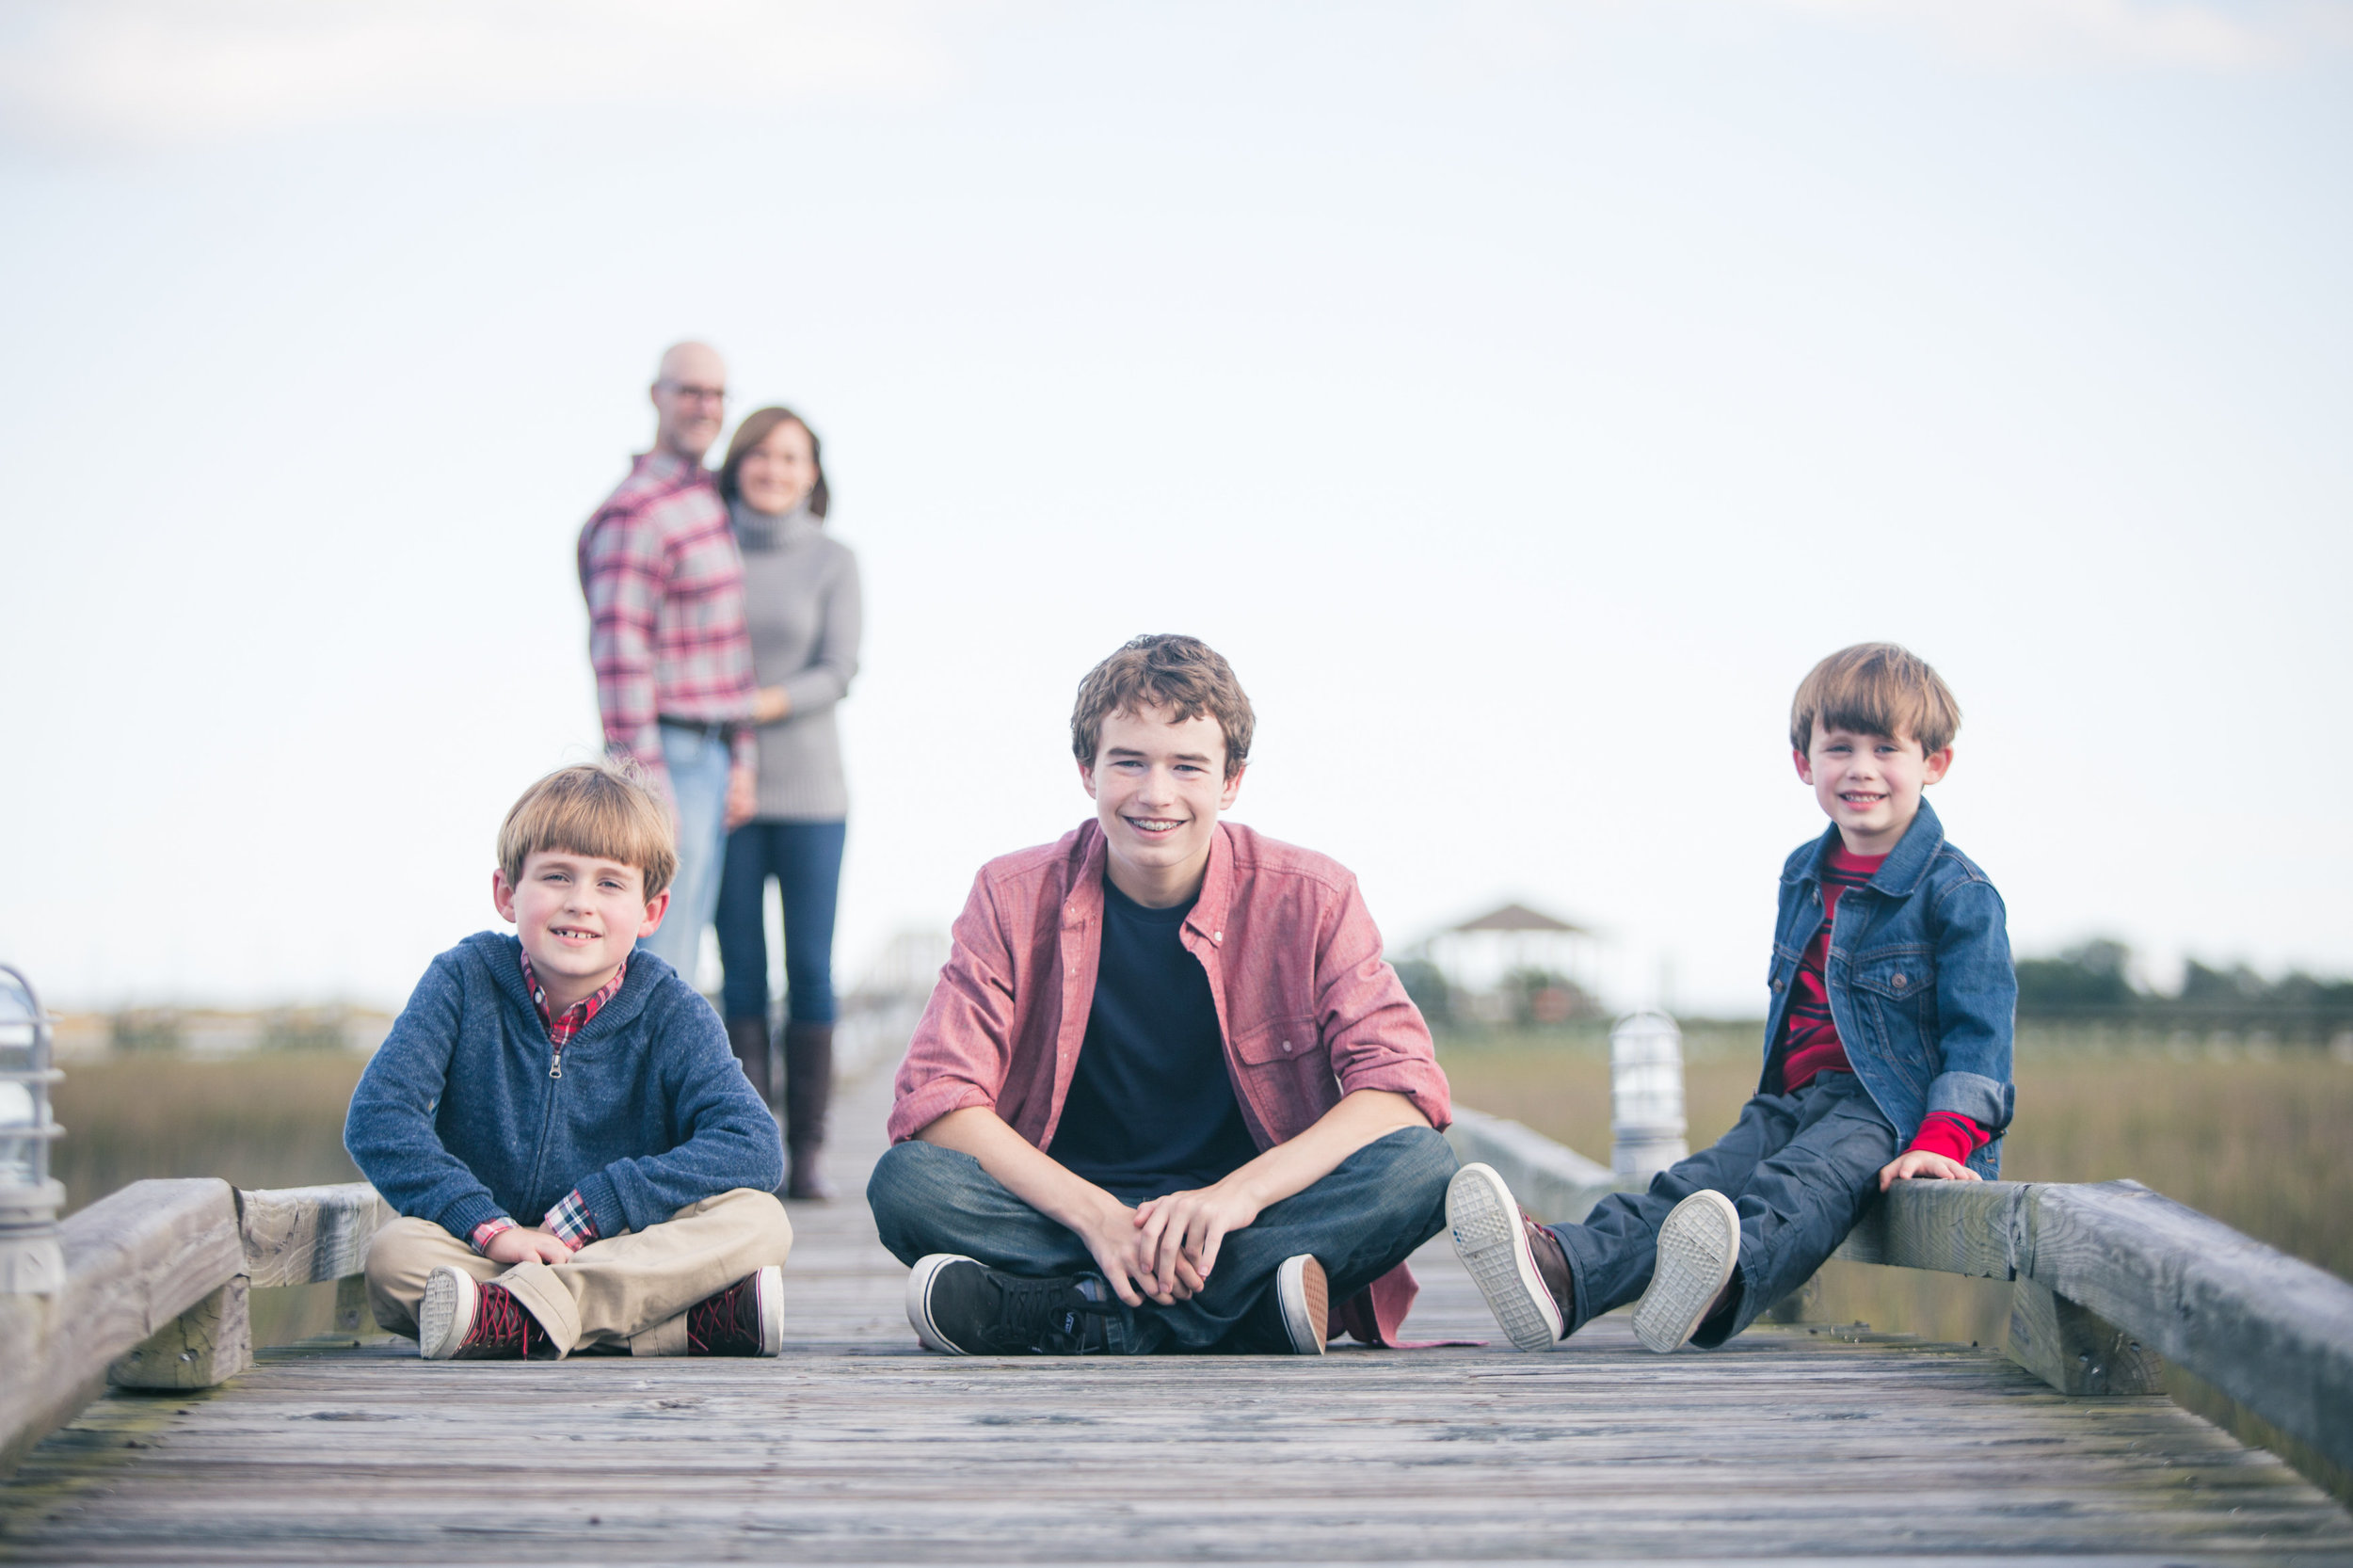 Woodfill Family-High Res for Print-0050.jpg